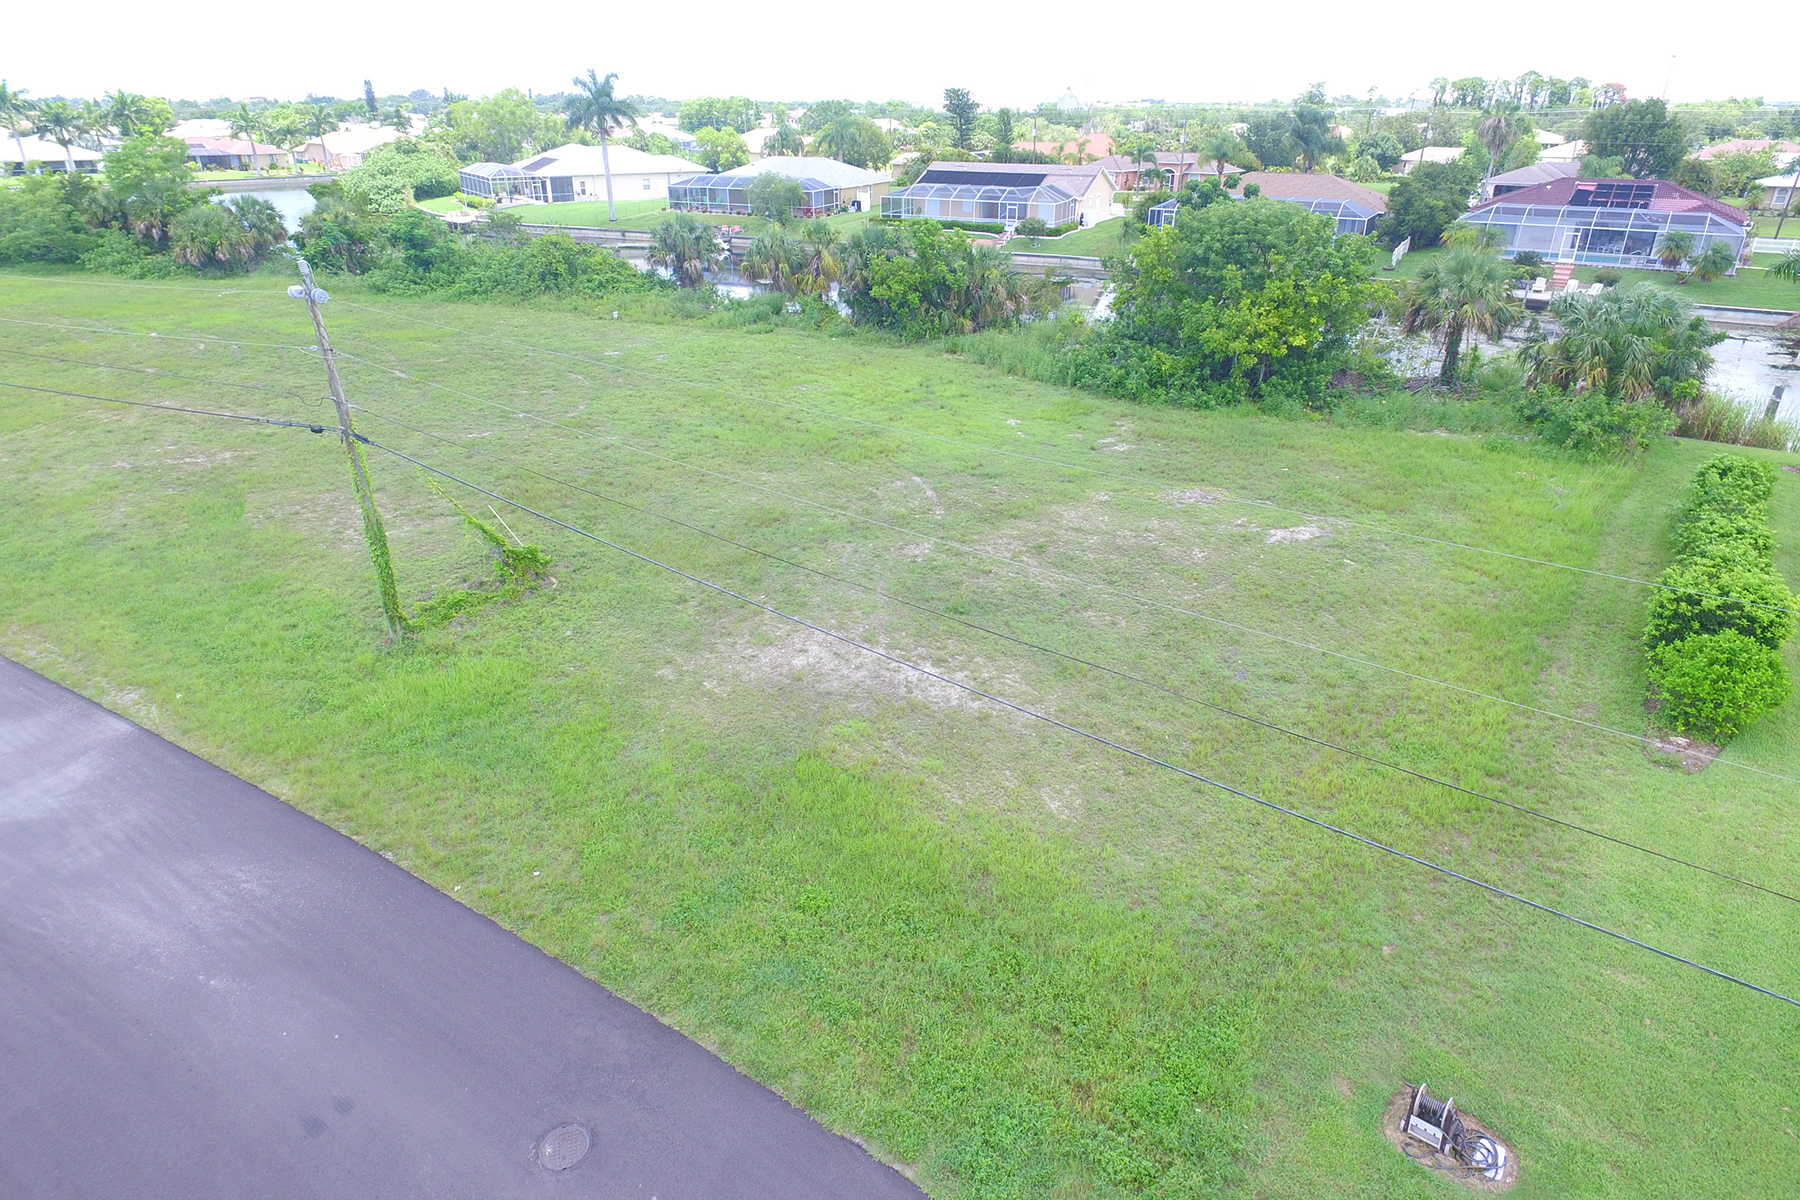 Terreno por un Venta en CAPE CORAL 2207 4th St Cape Coral, Florida 33909 Estados Unidos